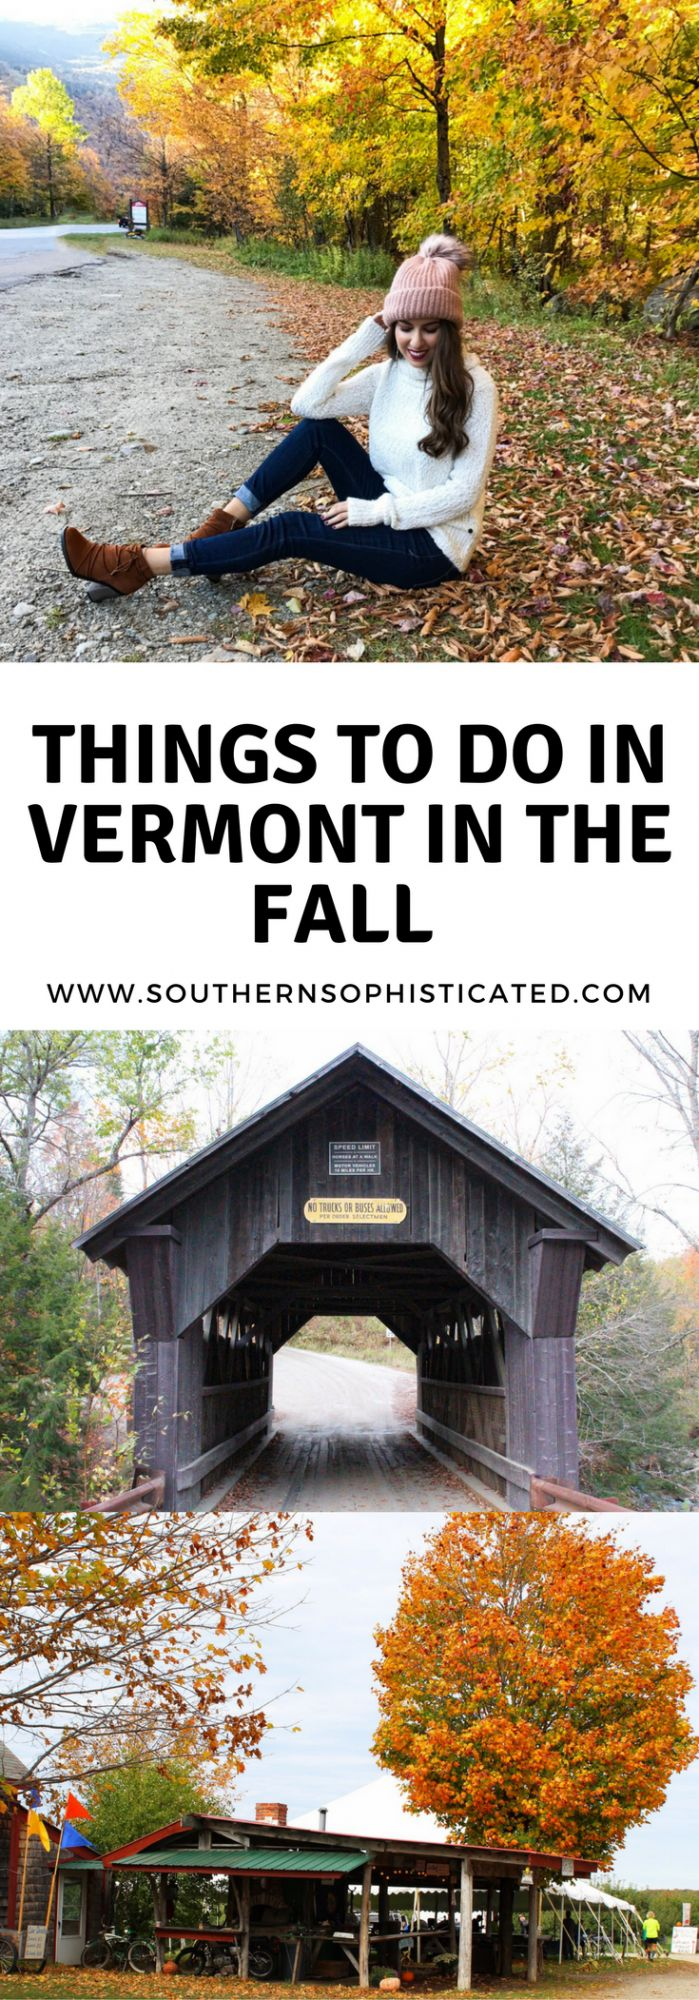 Things to Do in Vermont During the Fall. Fall Trip to Vermont. Vermont during the Fall. Vermont Fall Foliage. Burlington Vermont. Stowe Vermont. Apple Picking in Vermont. Where to stay in Vermont. Things to do in Vermont.